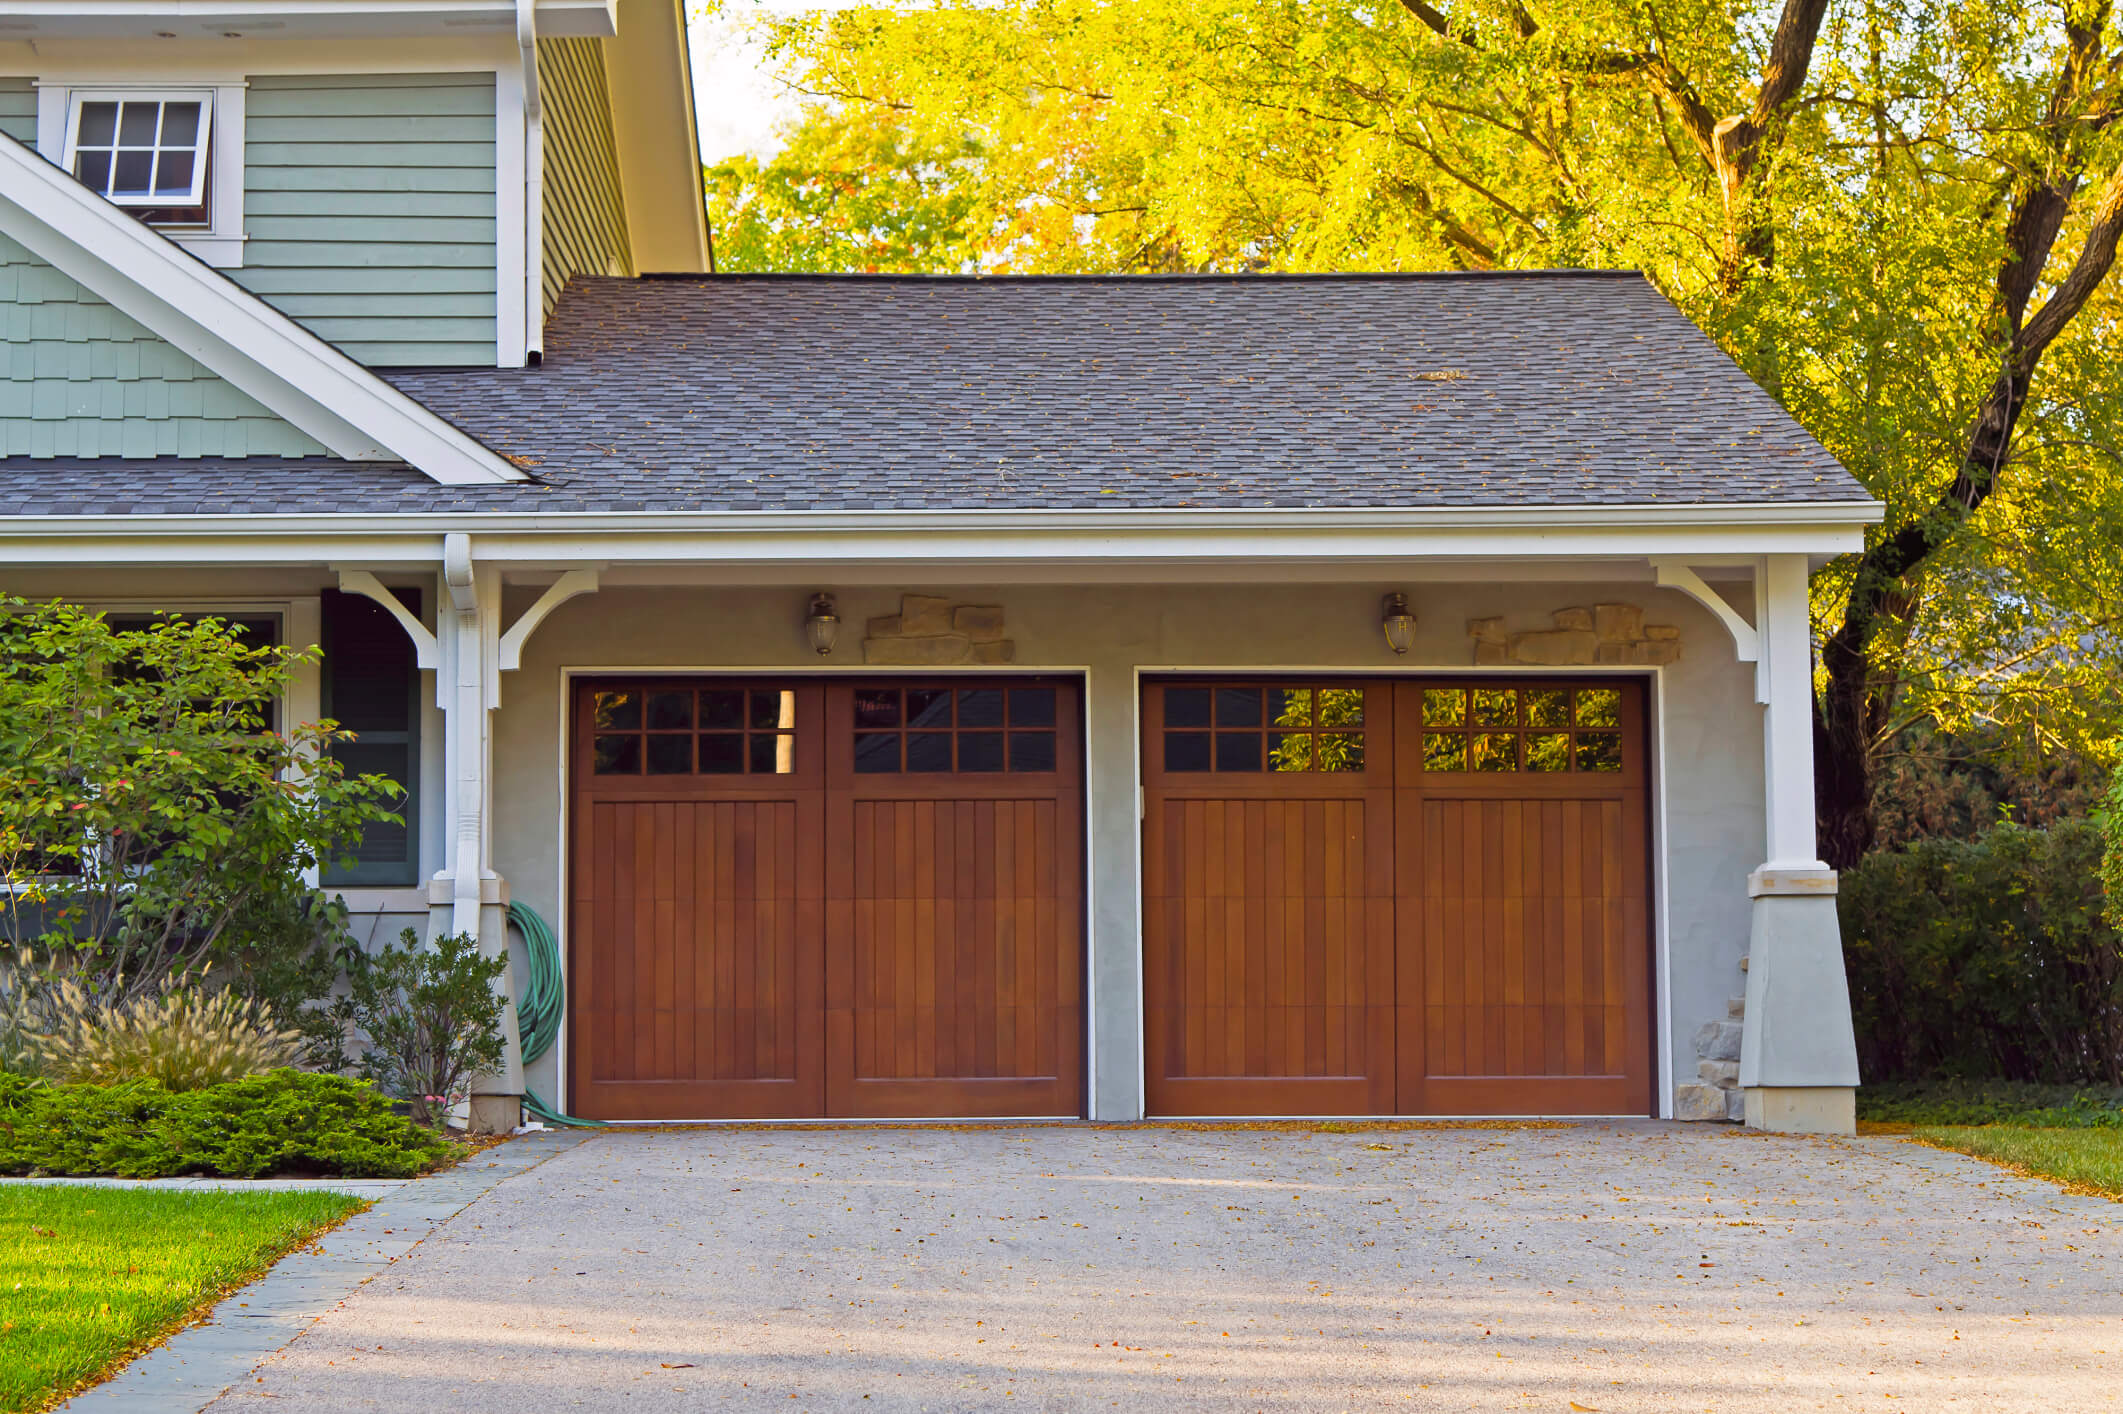 Garage Door Safety Tips to Practice at Home